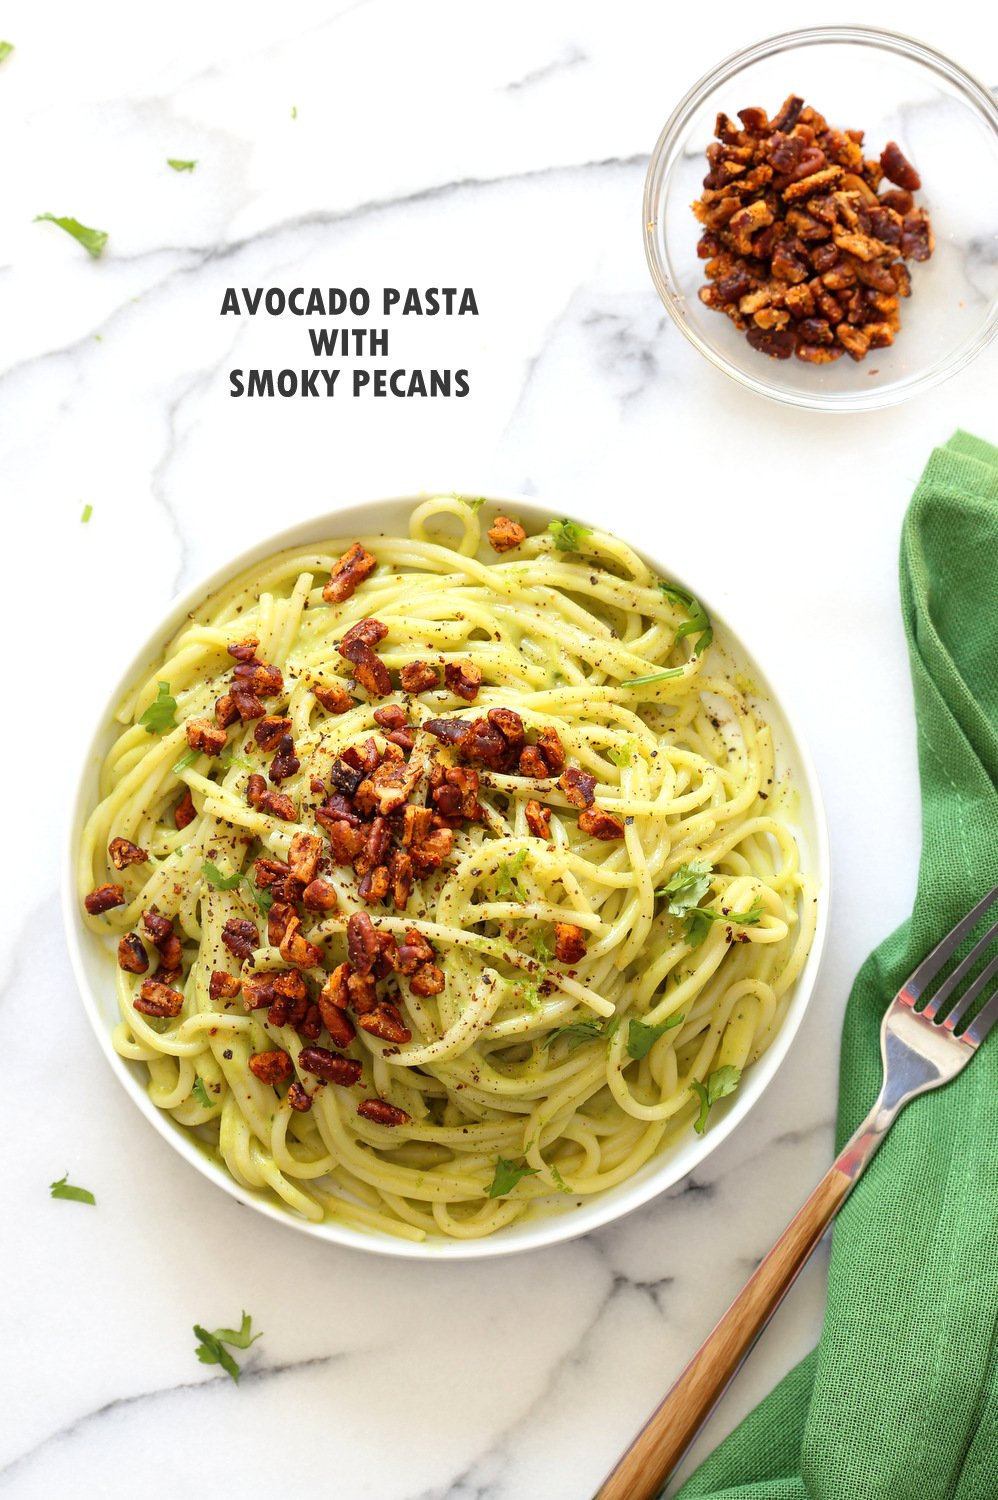 Avocado Pasta with Smoky Pecans